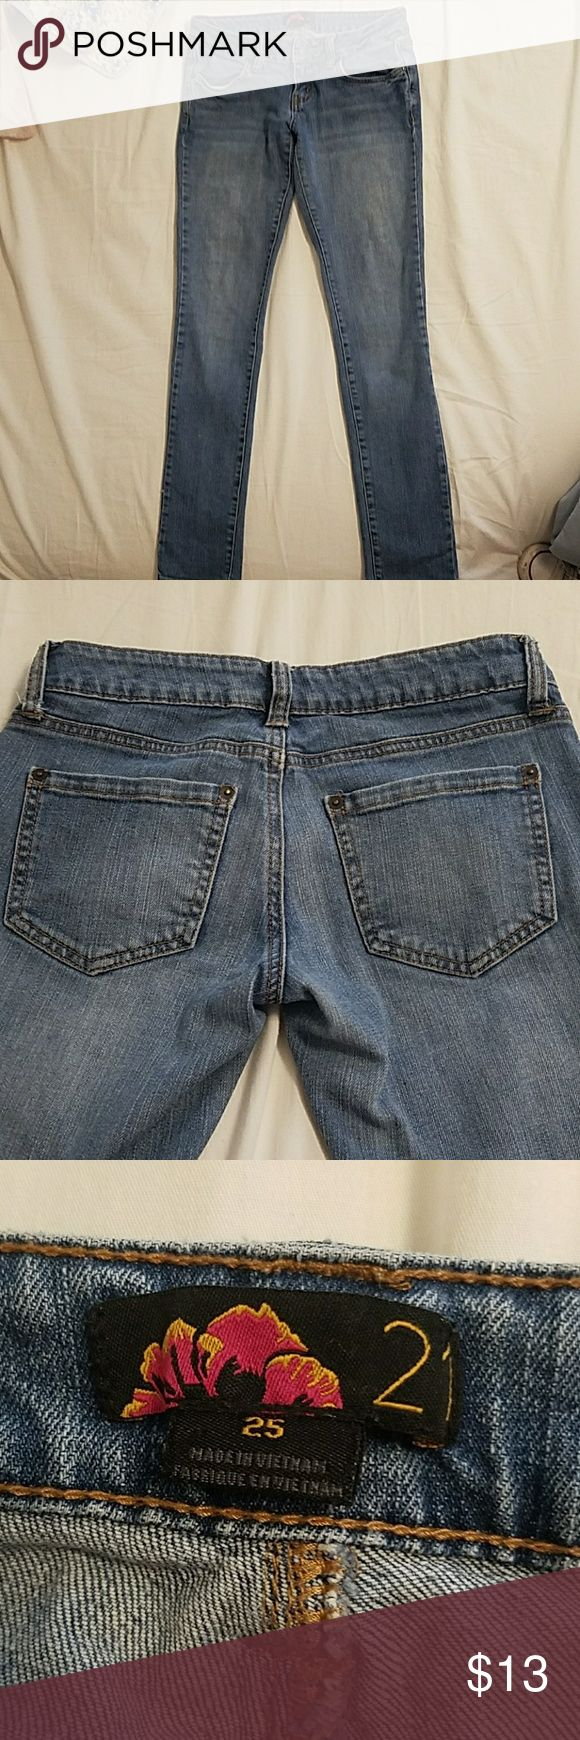 WOMENS LOW RISE JEANS womens low rise jeans 25 inch waist and 34 inches long from waist to the bottom of the leg.  Loved and in good condition! 21 Jeans